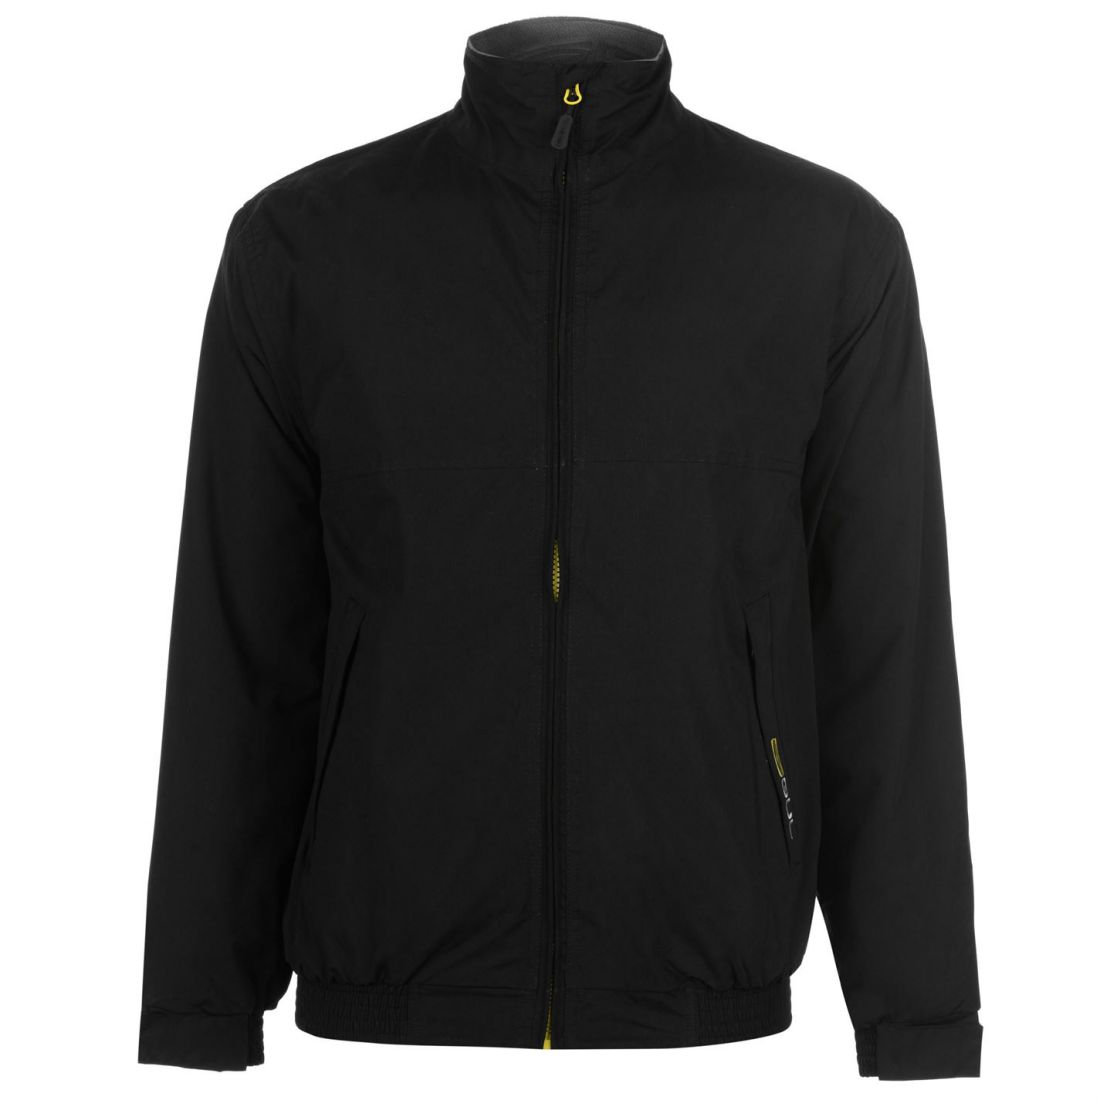 8709b168 Details about Gul Mens Blouson Jacket Performance Coat Top Waterproof  Windproof Breathable